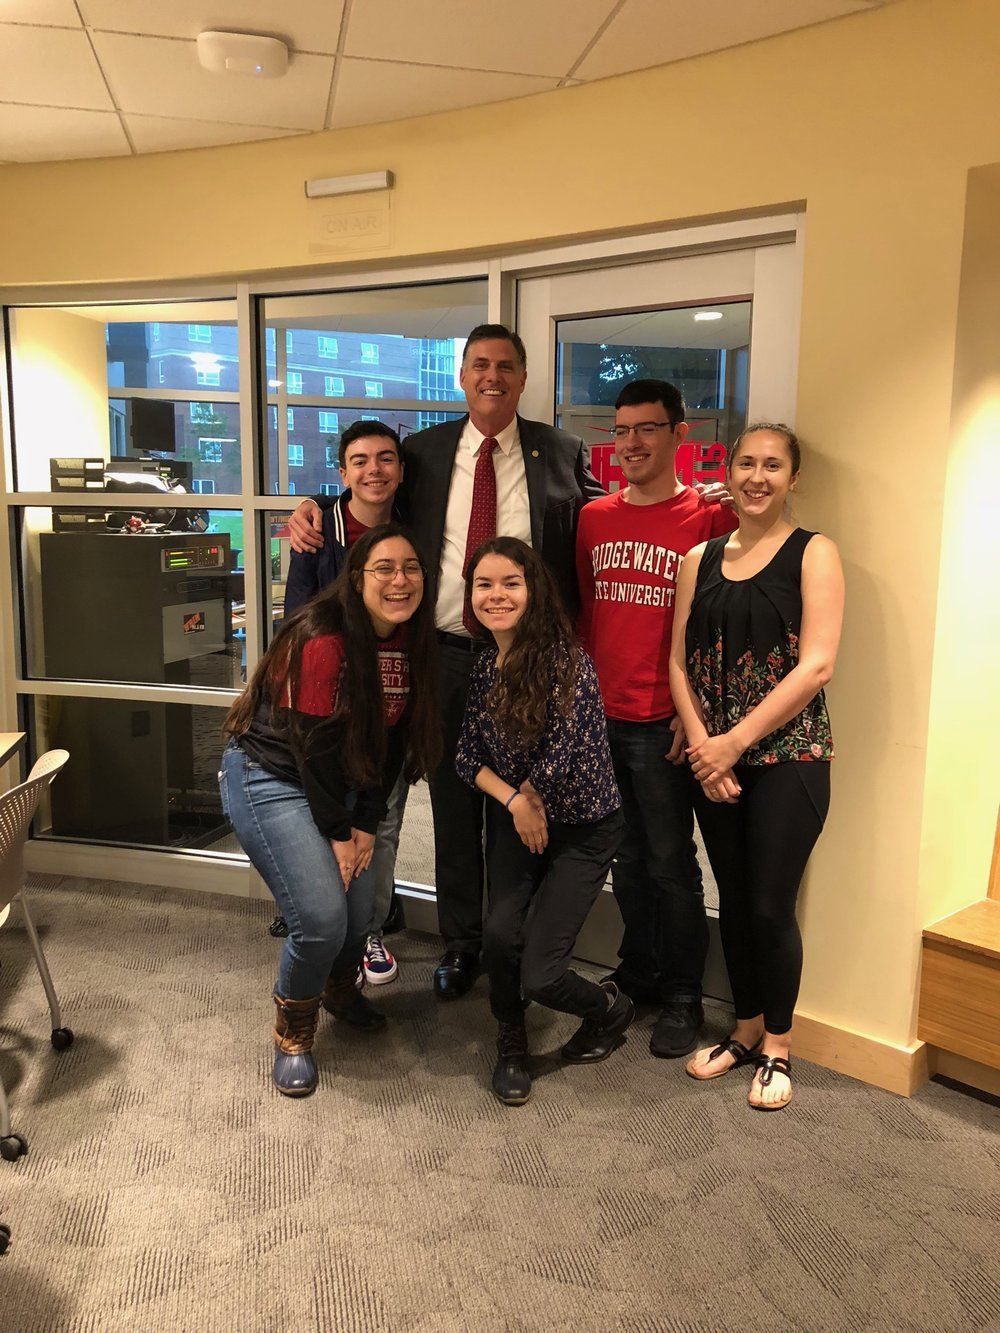 President Clark poses with students. (Fack row left to right: Nick Jordan, President Fred Clark, Sean Meehan, Alyssa Raymond Front row, left to right: Mia Sarkisian, Heather McKenna. Photo credits: Matt Rau)